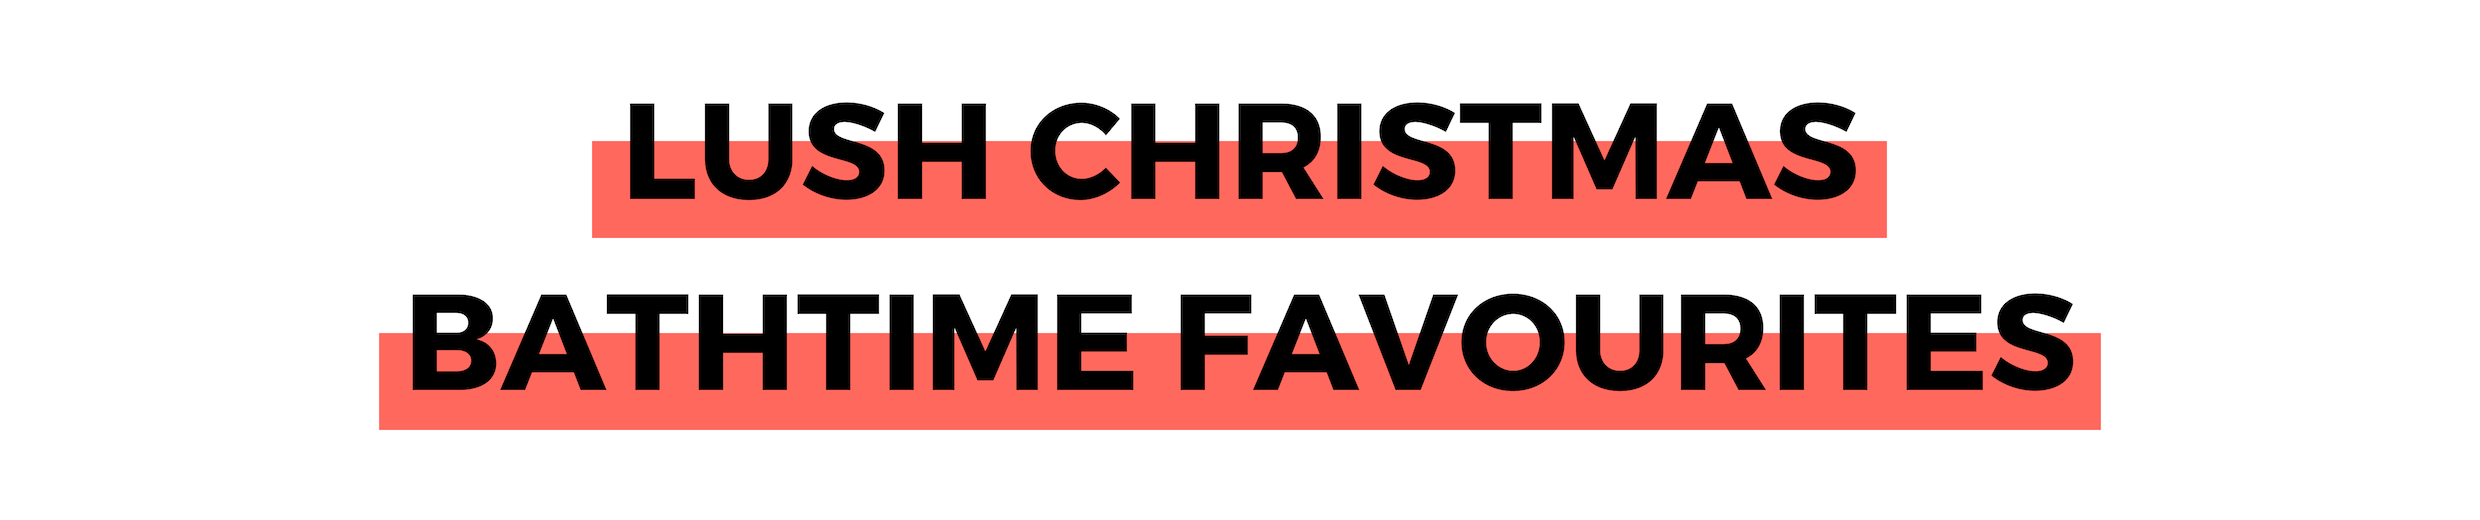 LUSH CHRISTMAS BATHTIME FAVOURITES.png